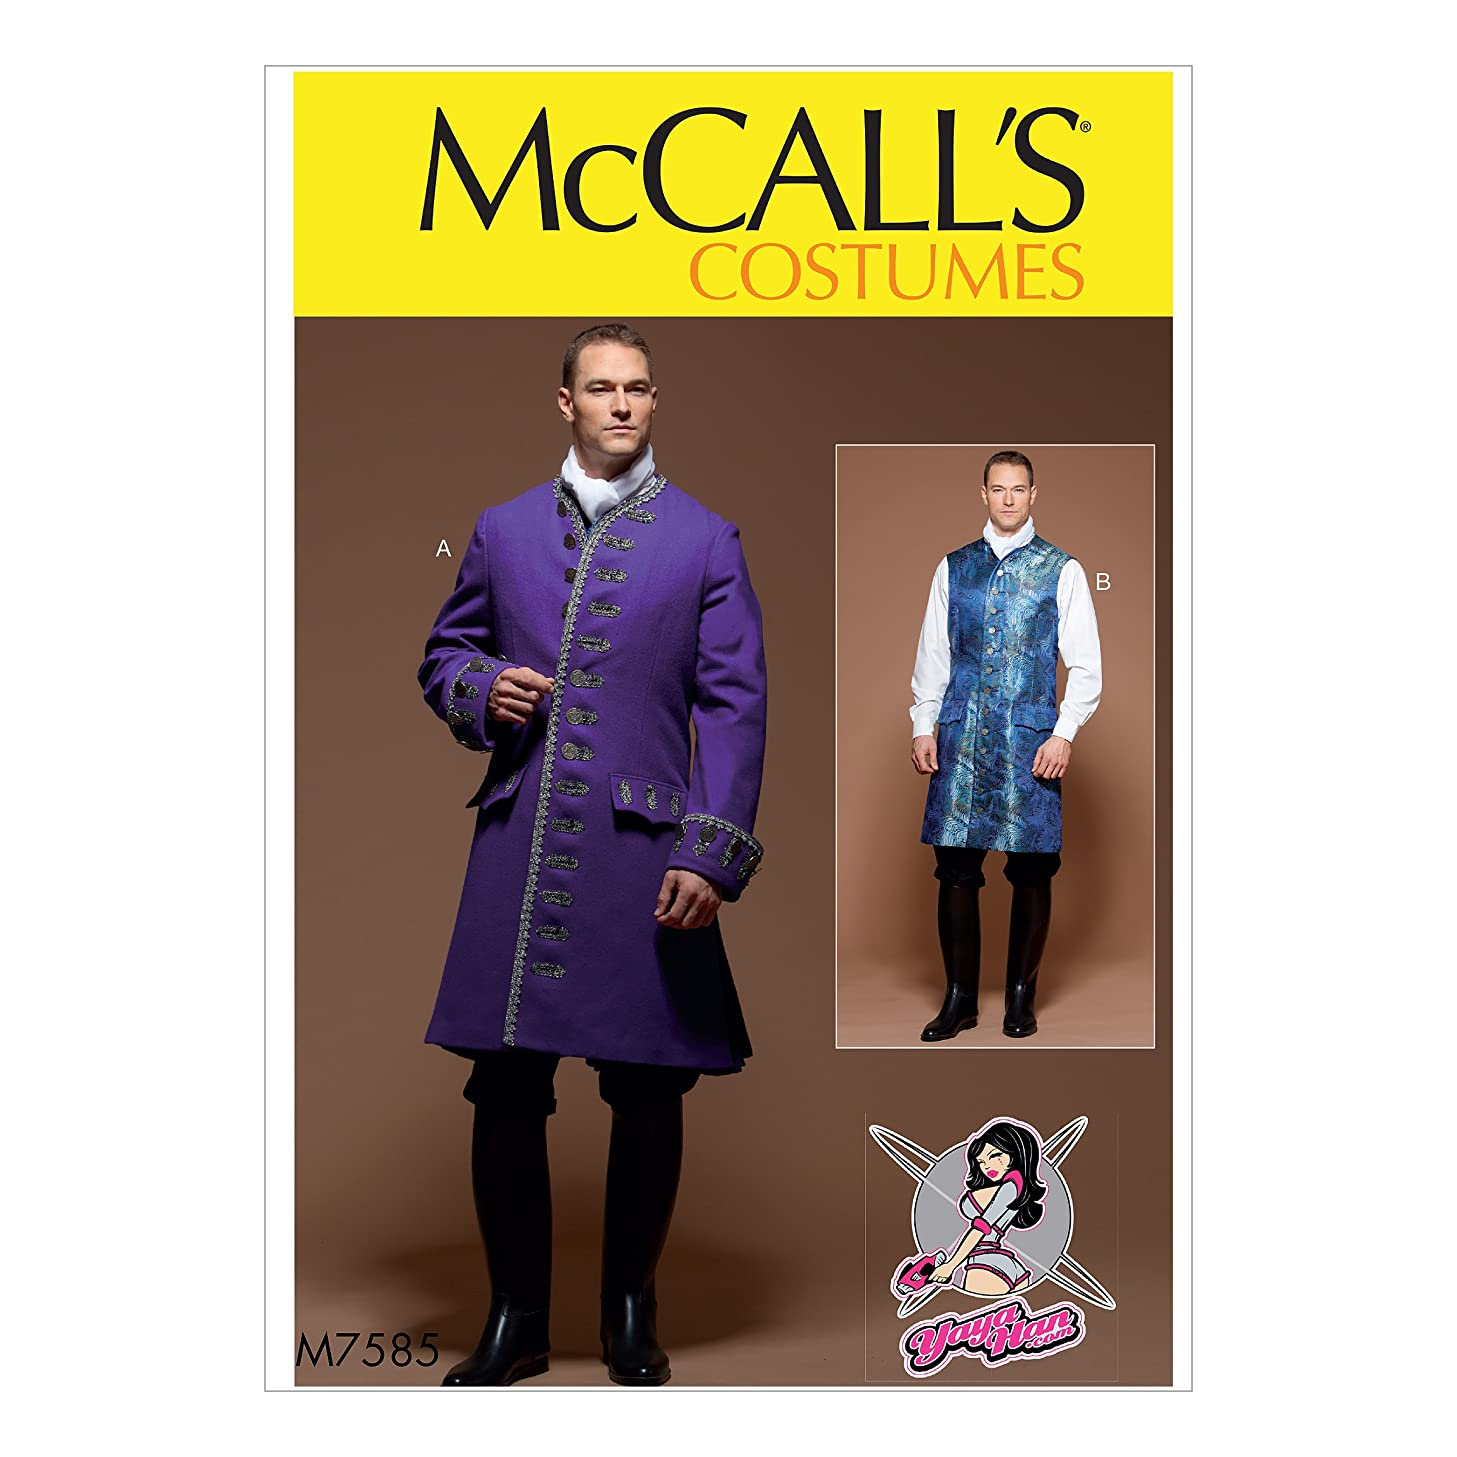 McCall's M7585 Men's Coat Cosplay Coat Costume Sewing Pattern by Yaya Han, Sizes 38-44